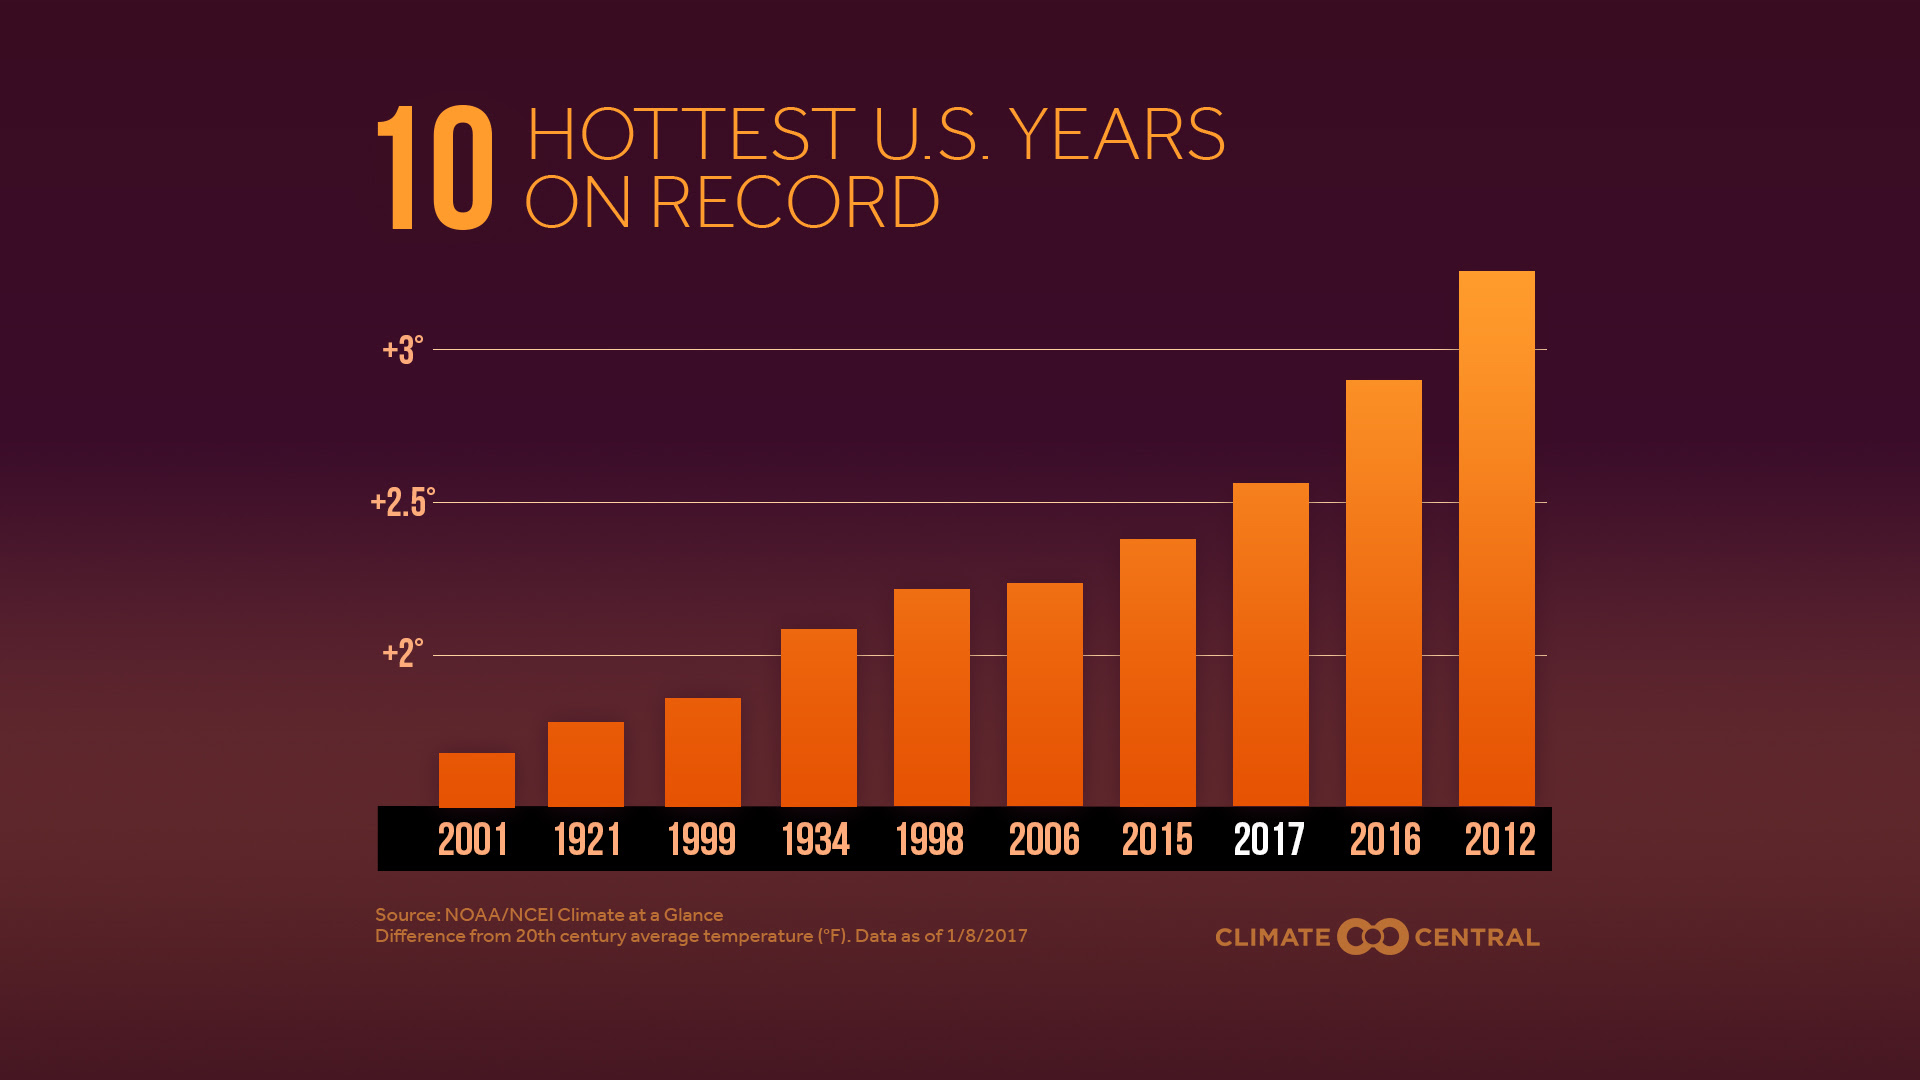 10 hottest u.s. years on record